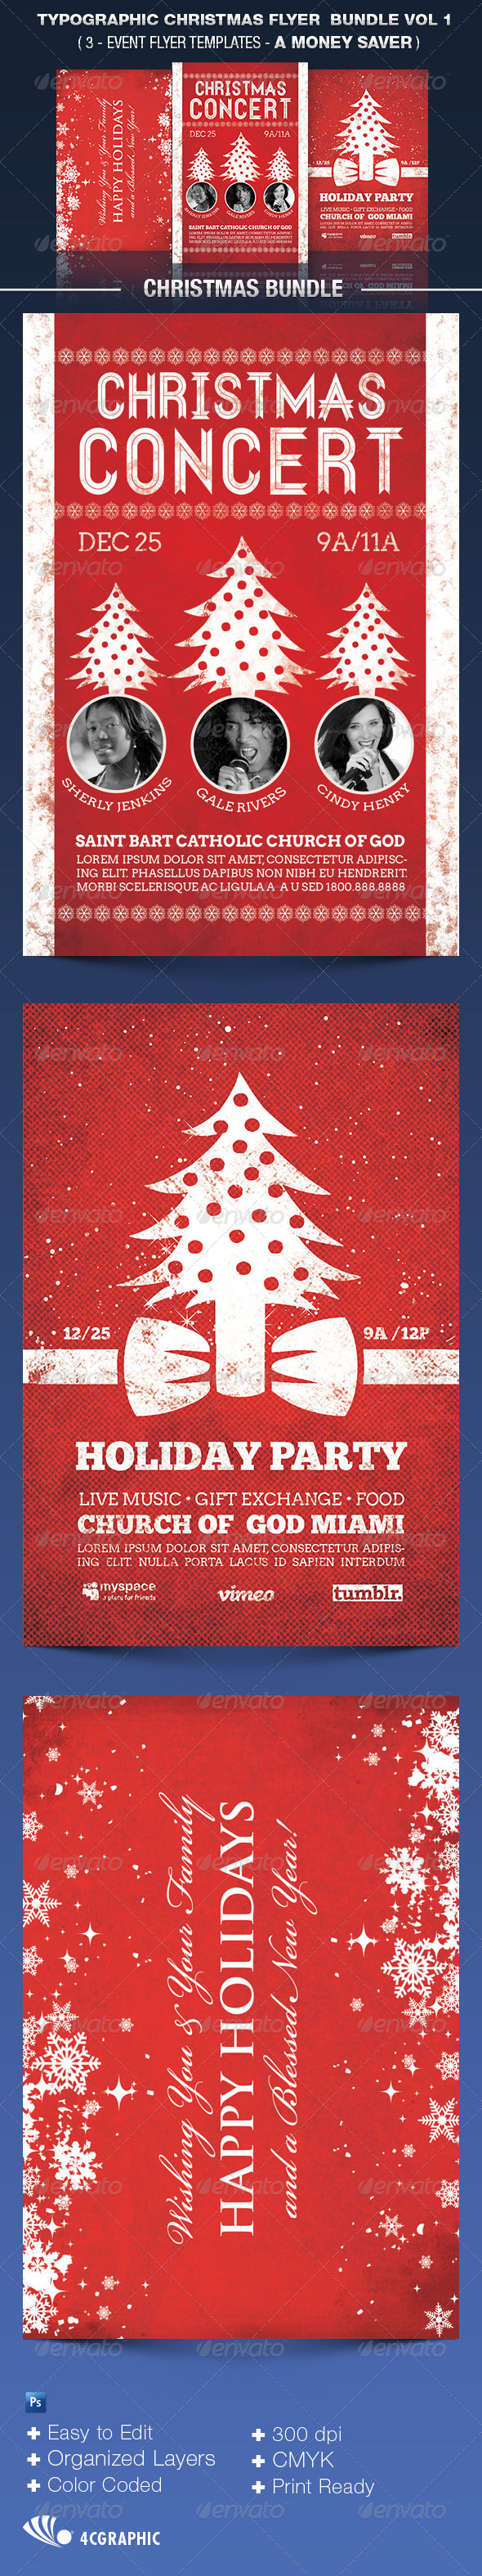 GraphicRiver The Typographic Christmas Flyer Bundle Vol 1 6160658